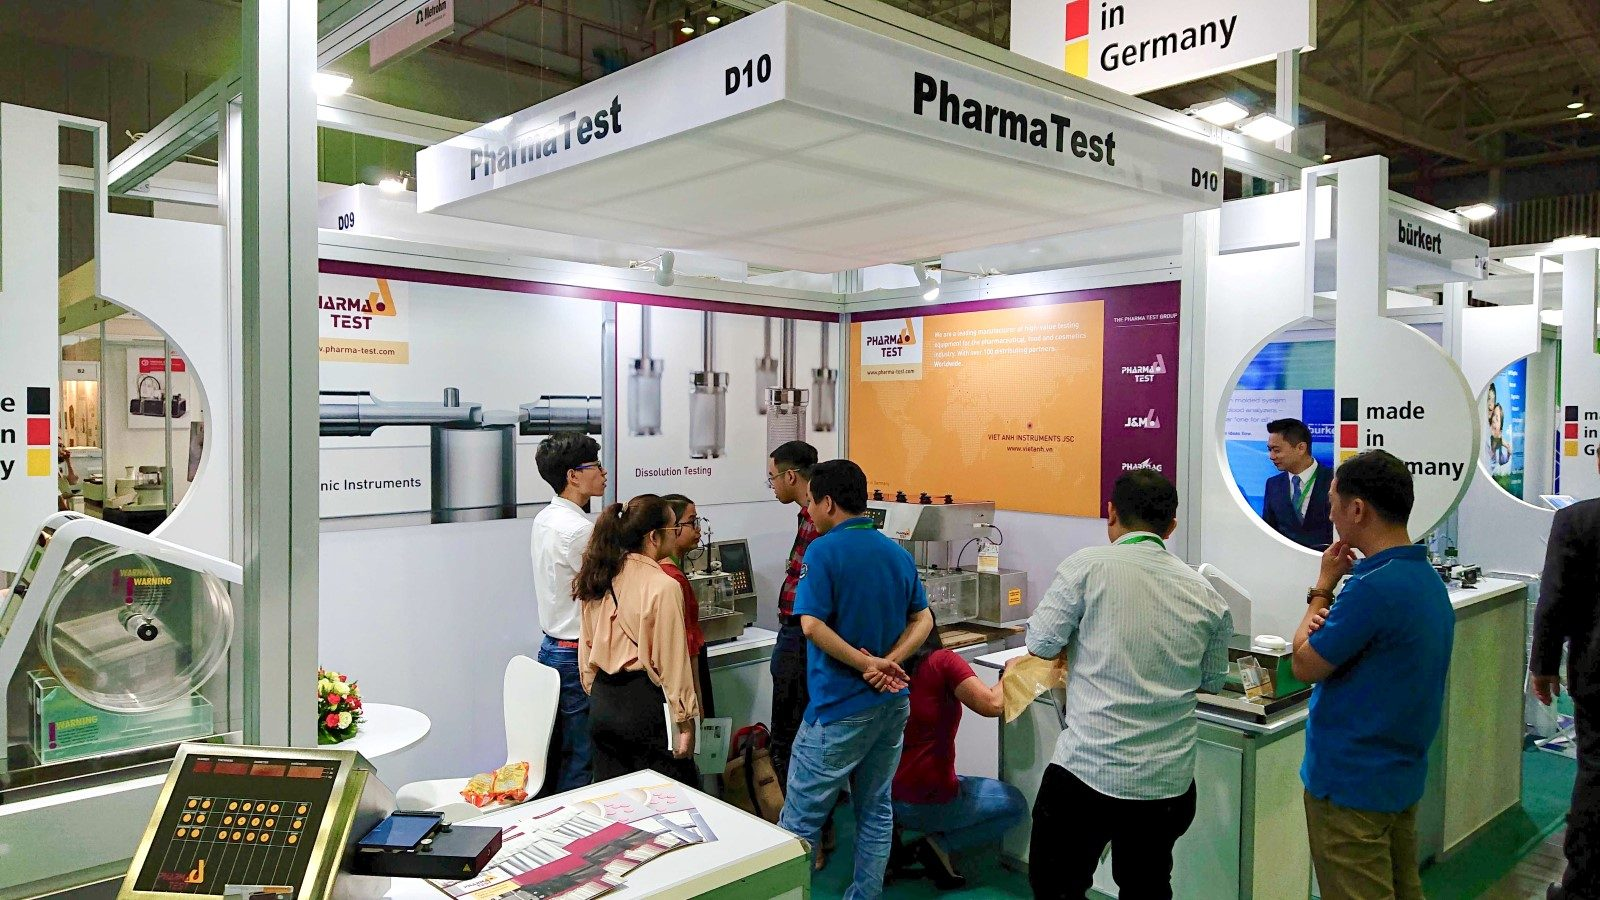 Impression at the Pharma Test booth